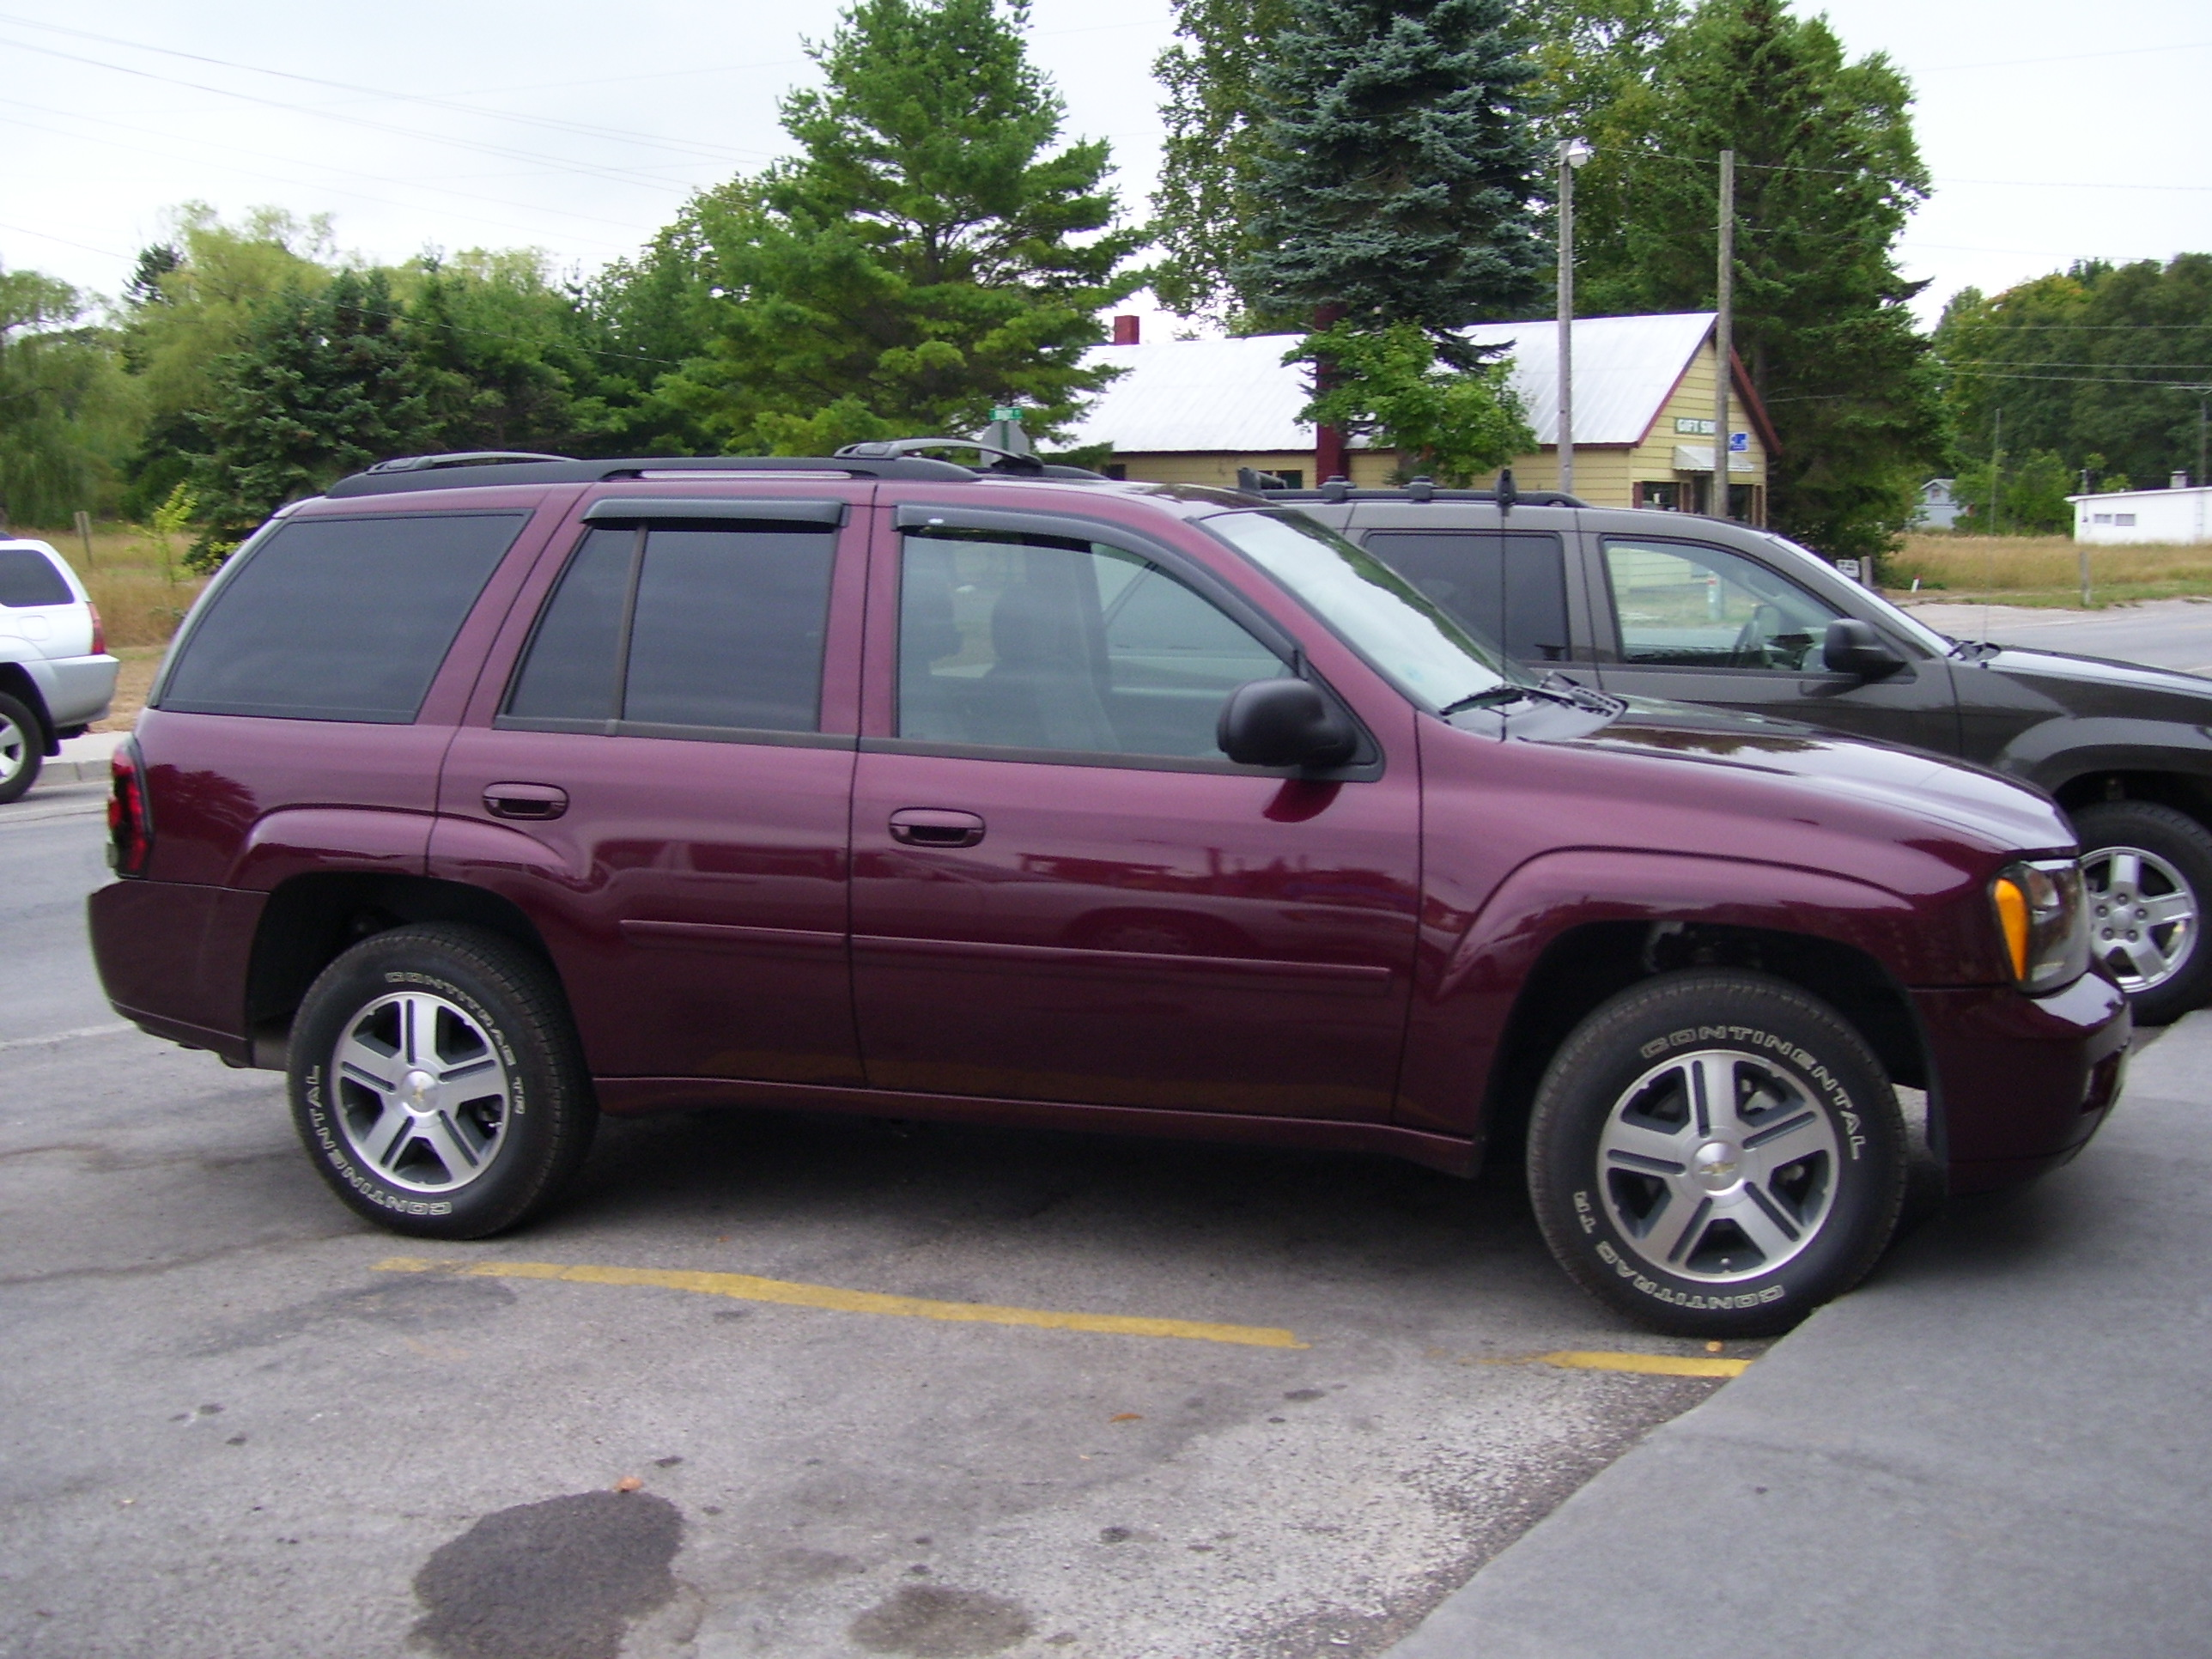 2007 Chevy Trailblazer